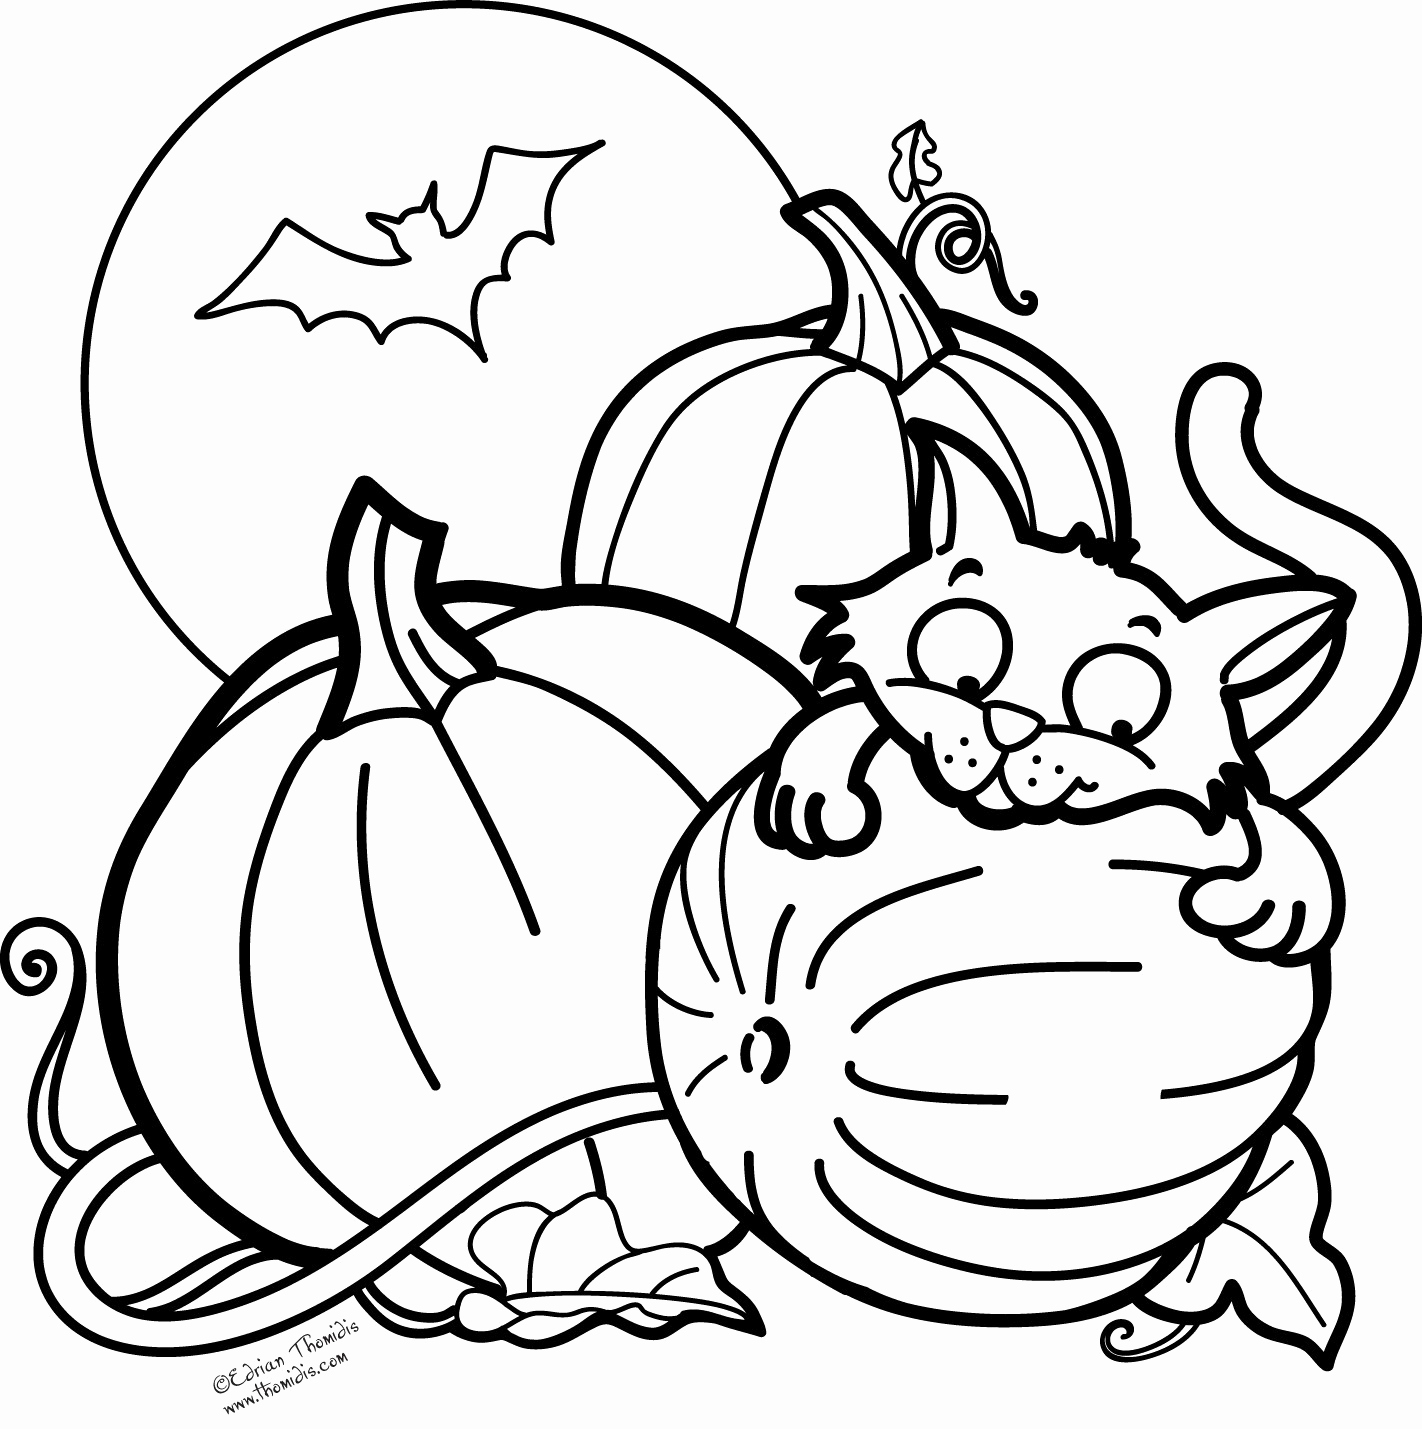 1422x1429 Childrens Halloween Coloring Pages Luxury Best Printable Disney